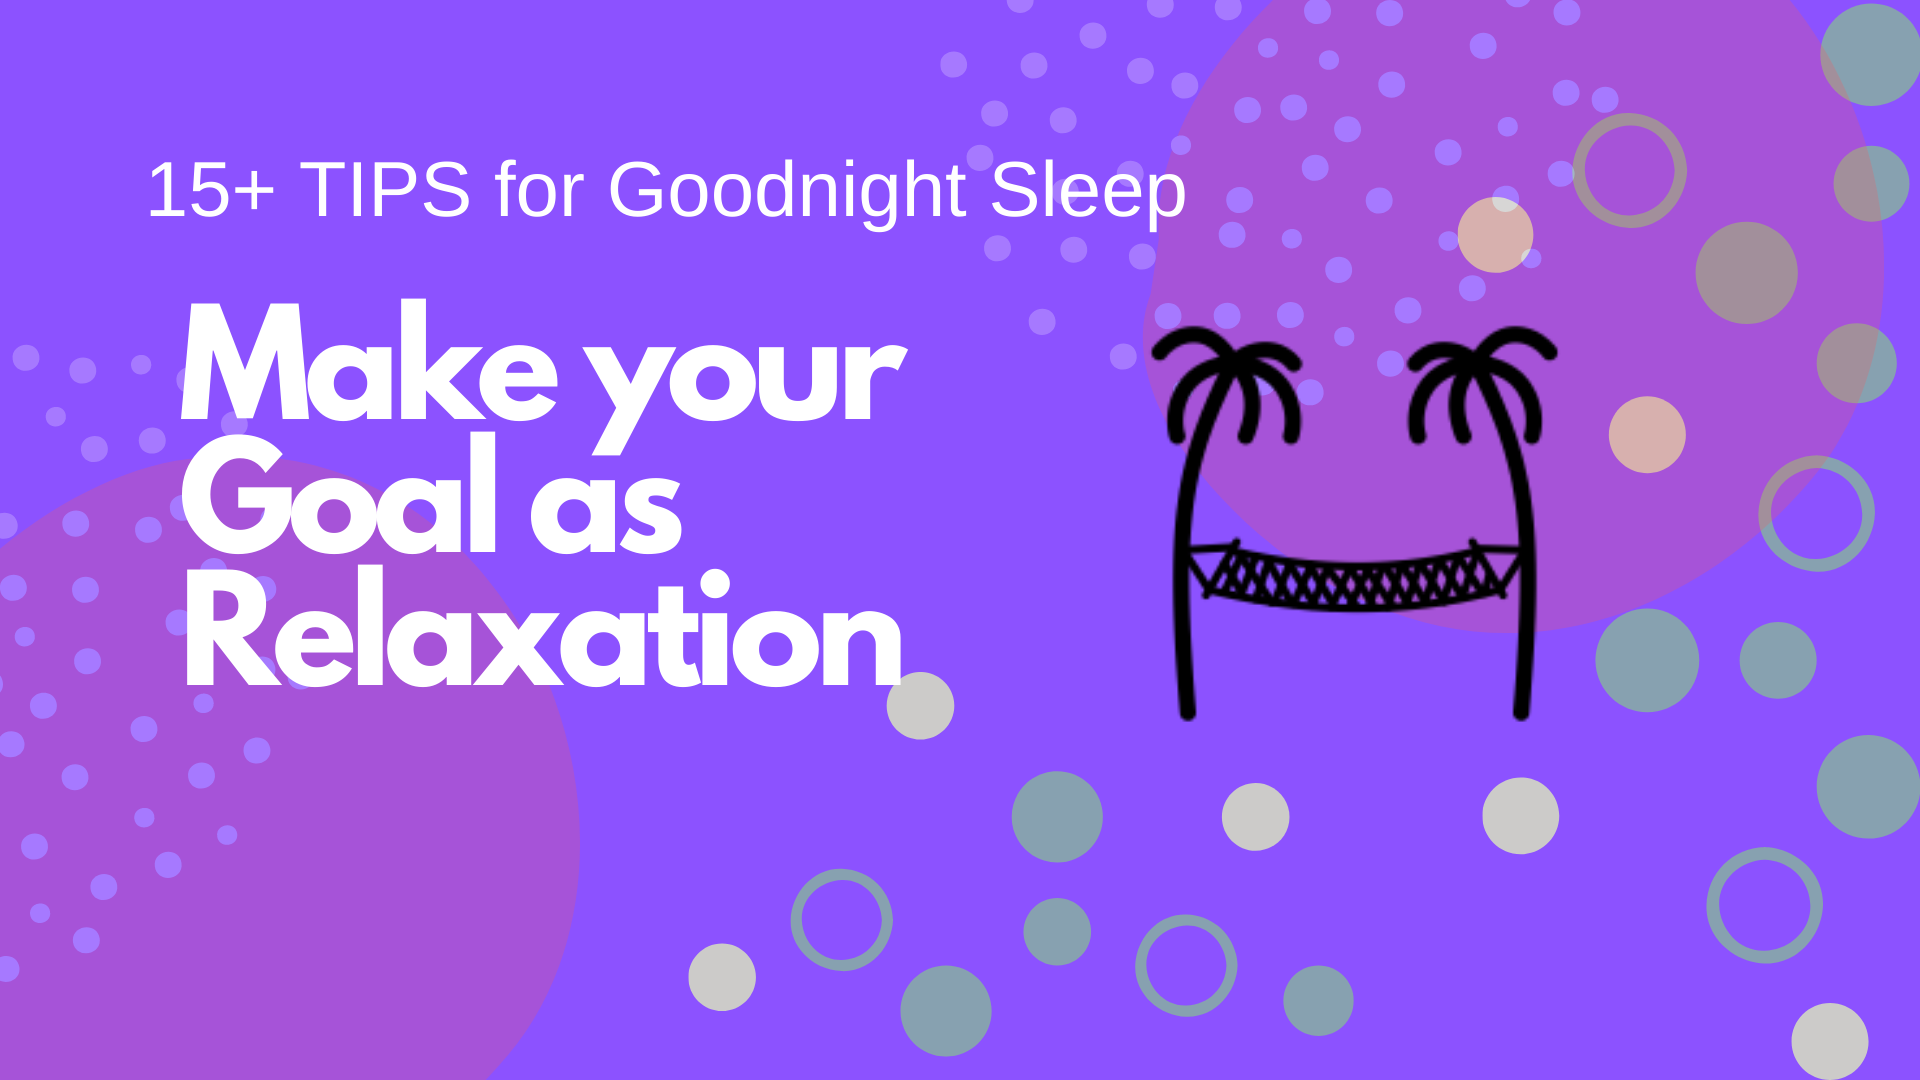 Make your goal as relaxation